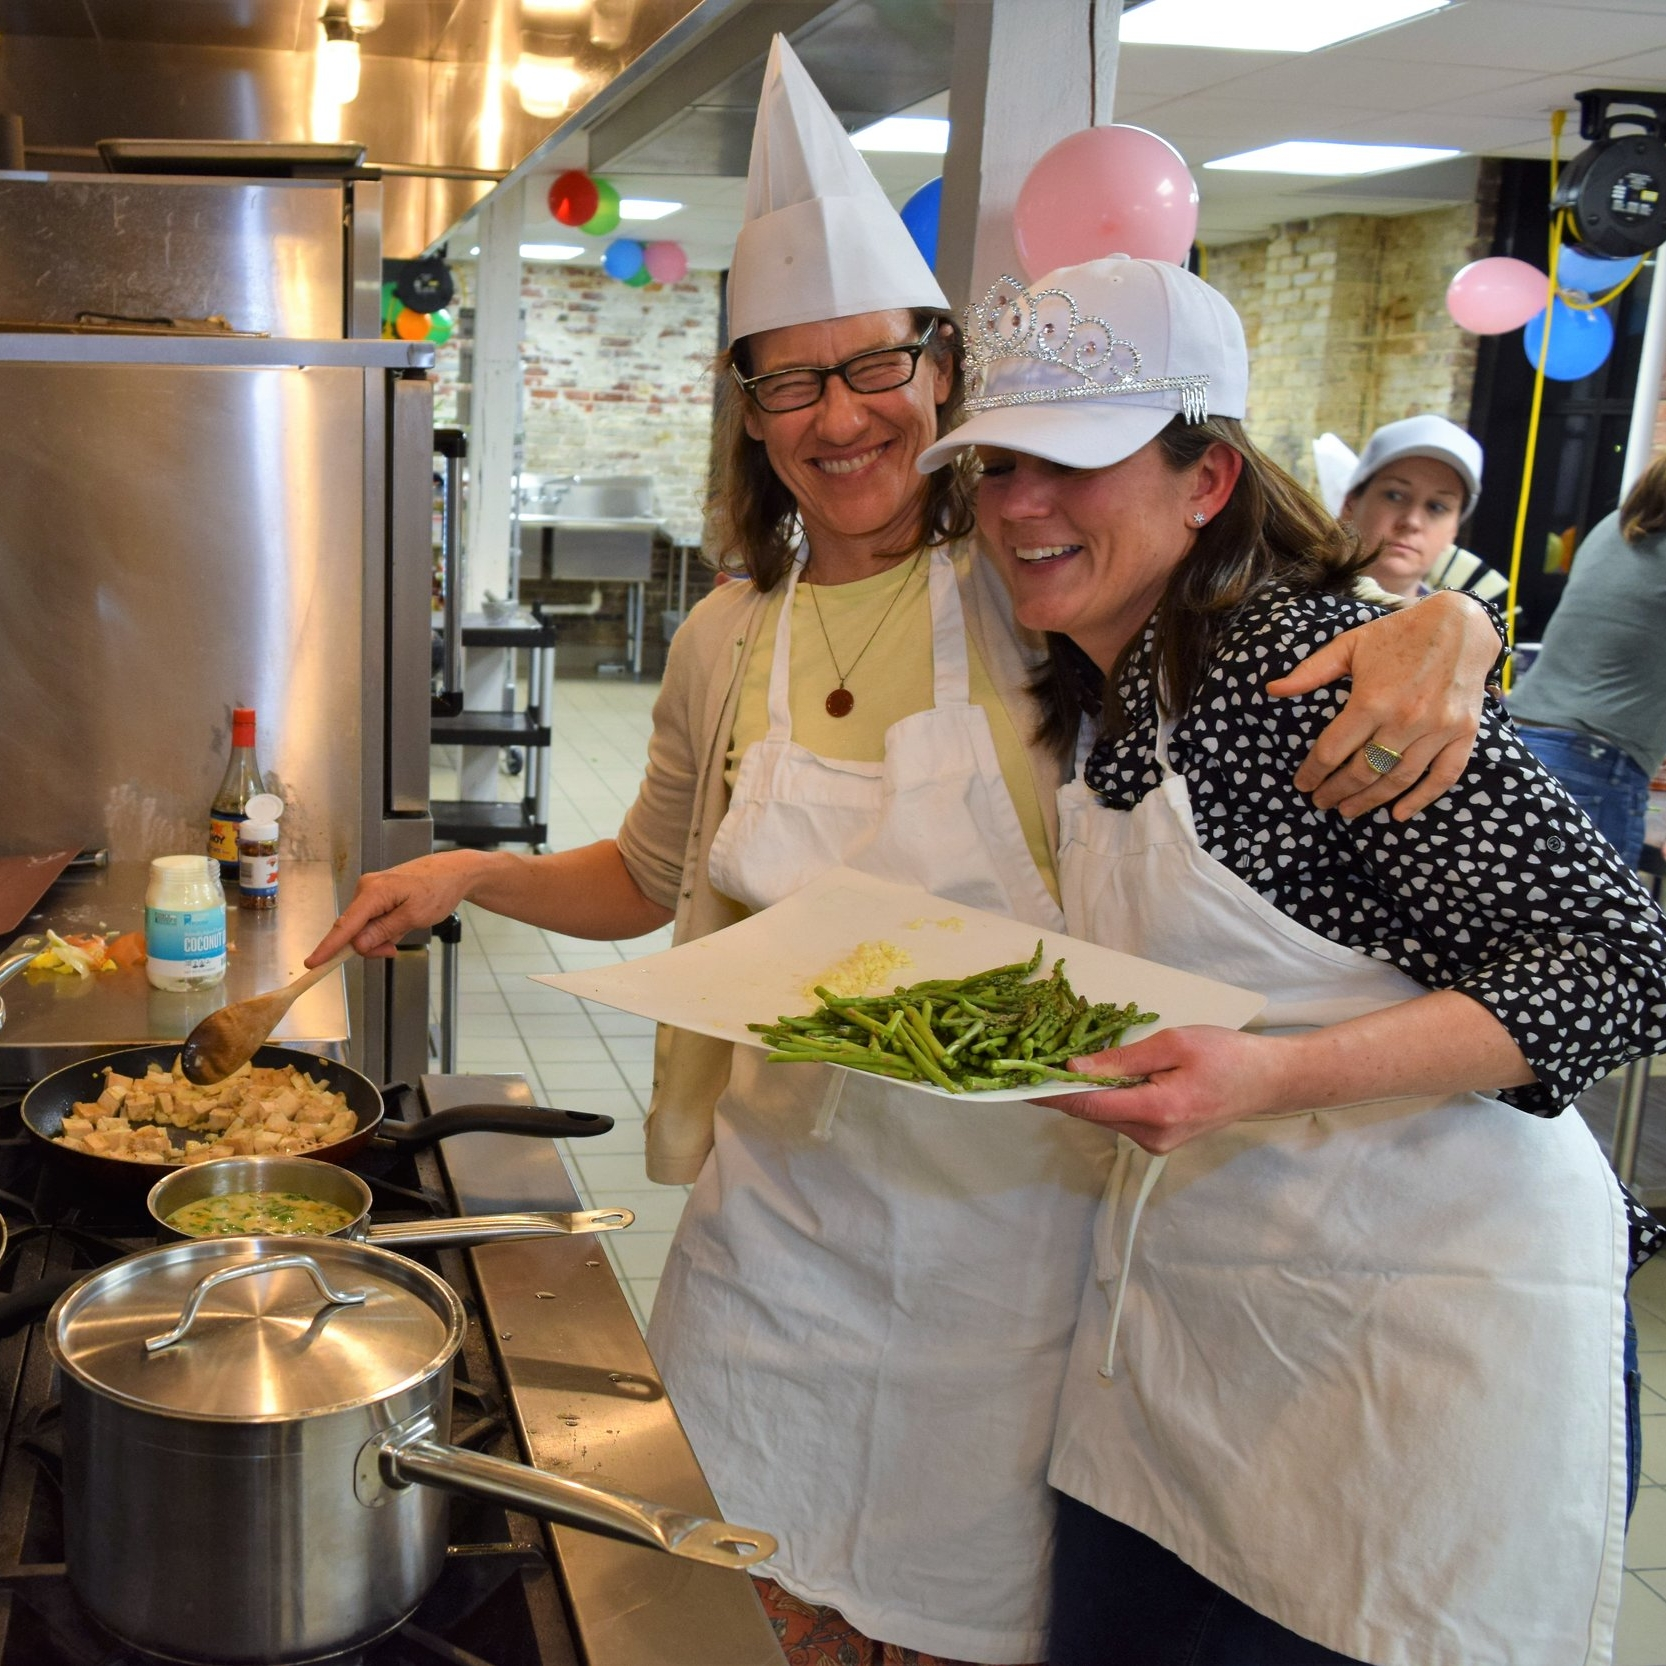 Friends cook together at fun adult birthday party competition